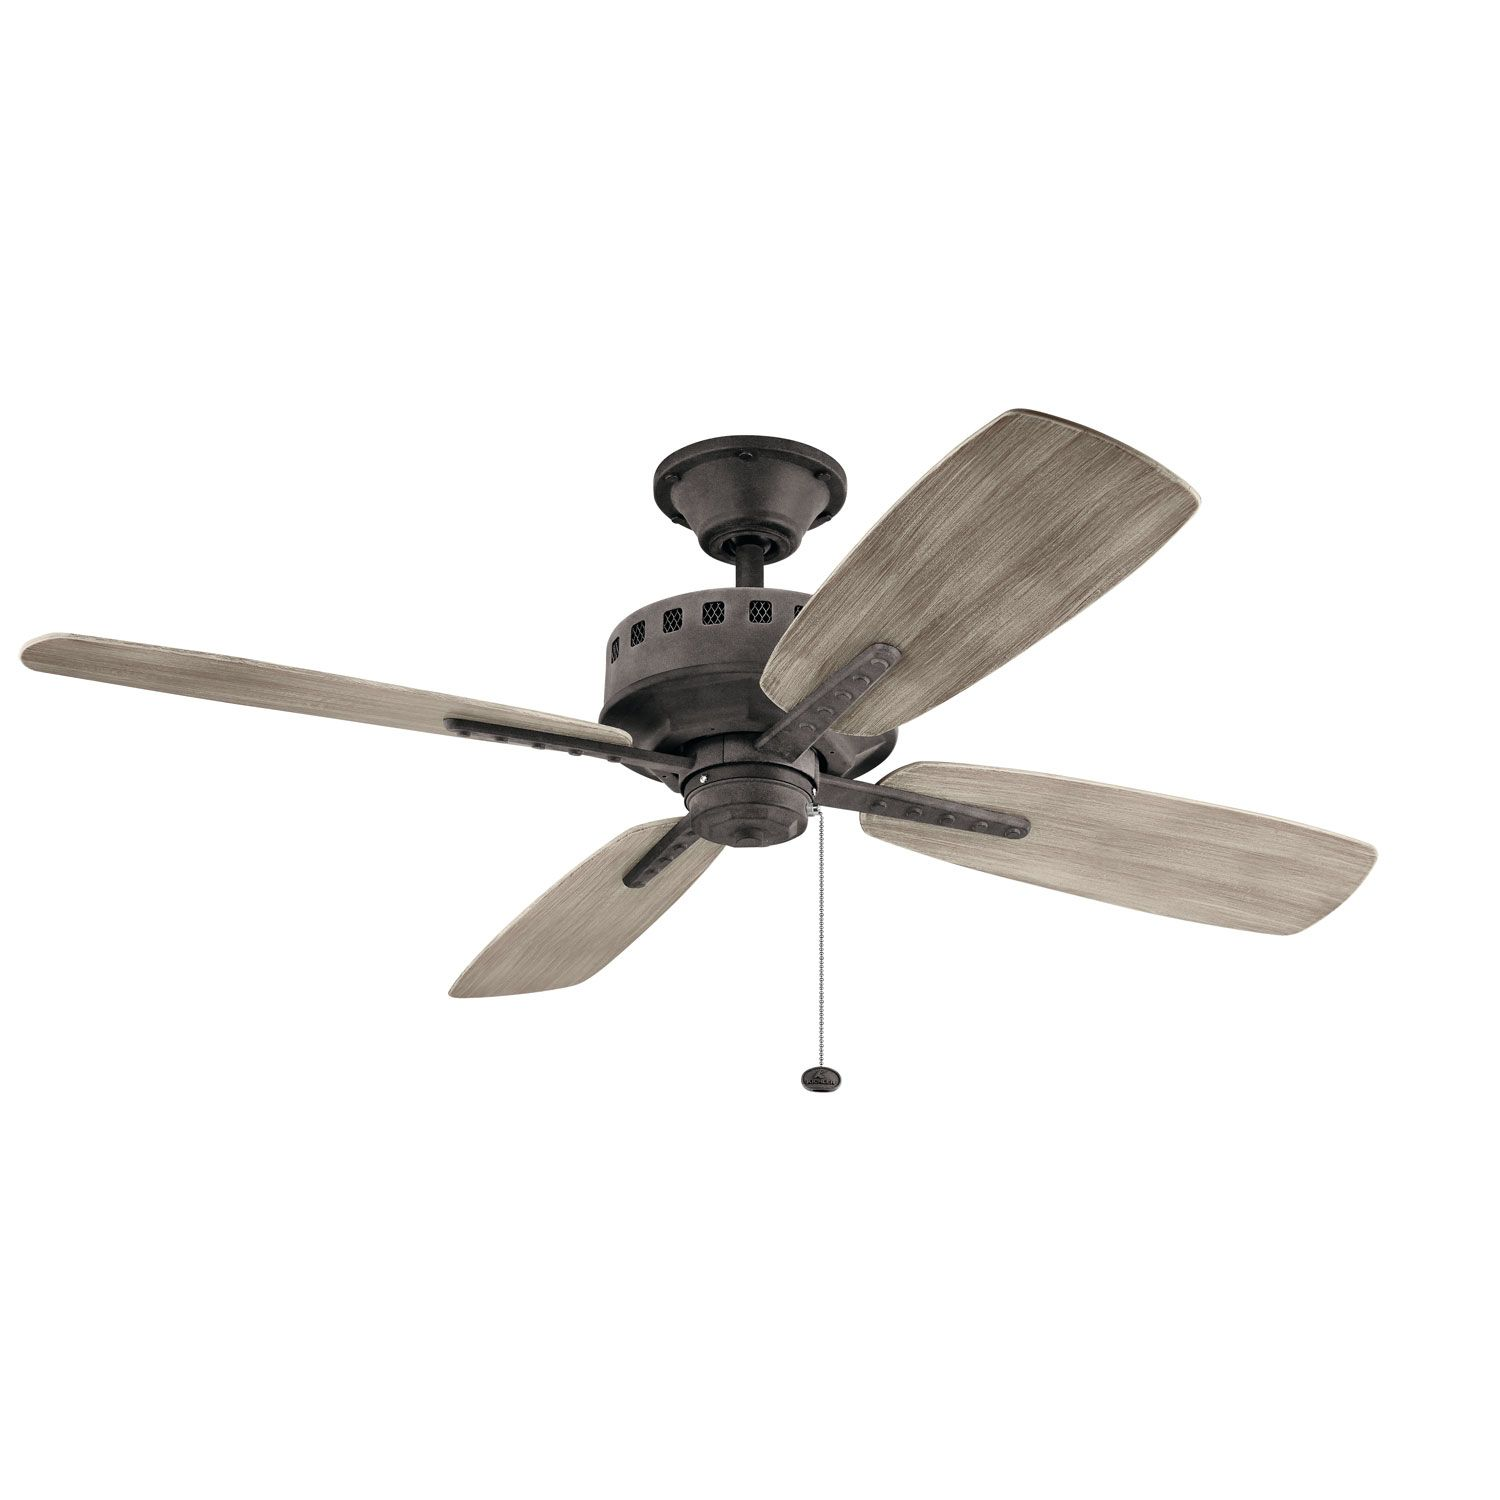 Kichler Eads Weathered Zinc 52 Inch Ceiling Fan